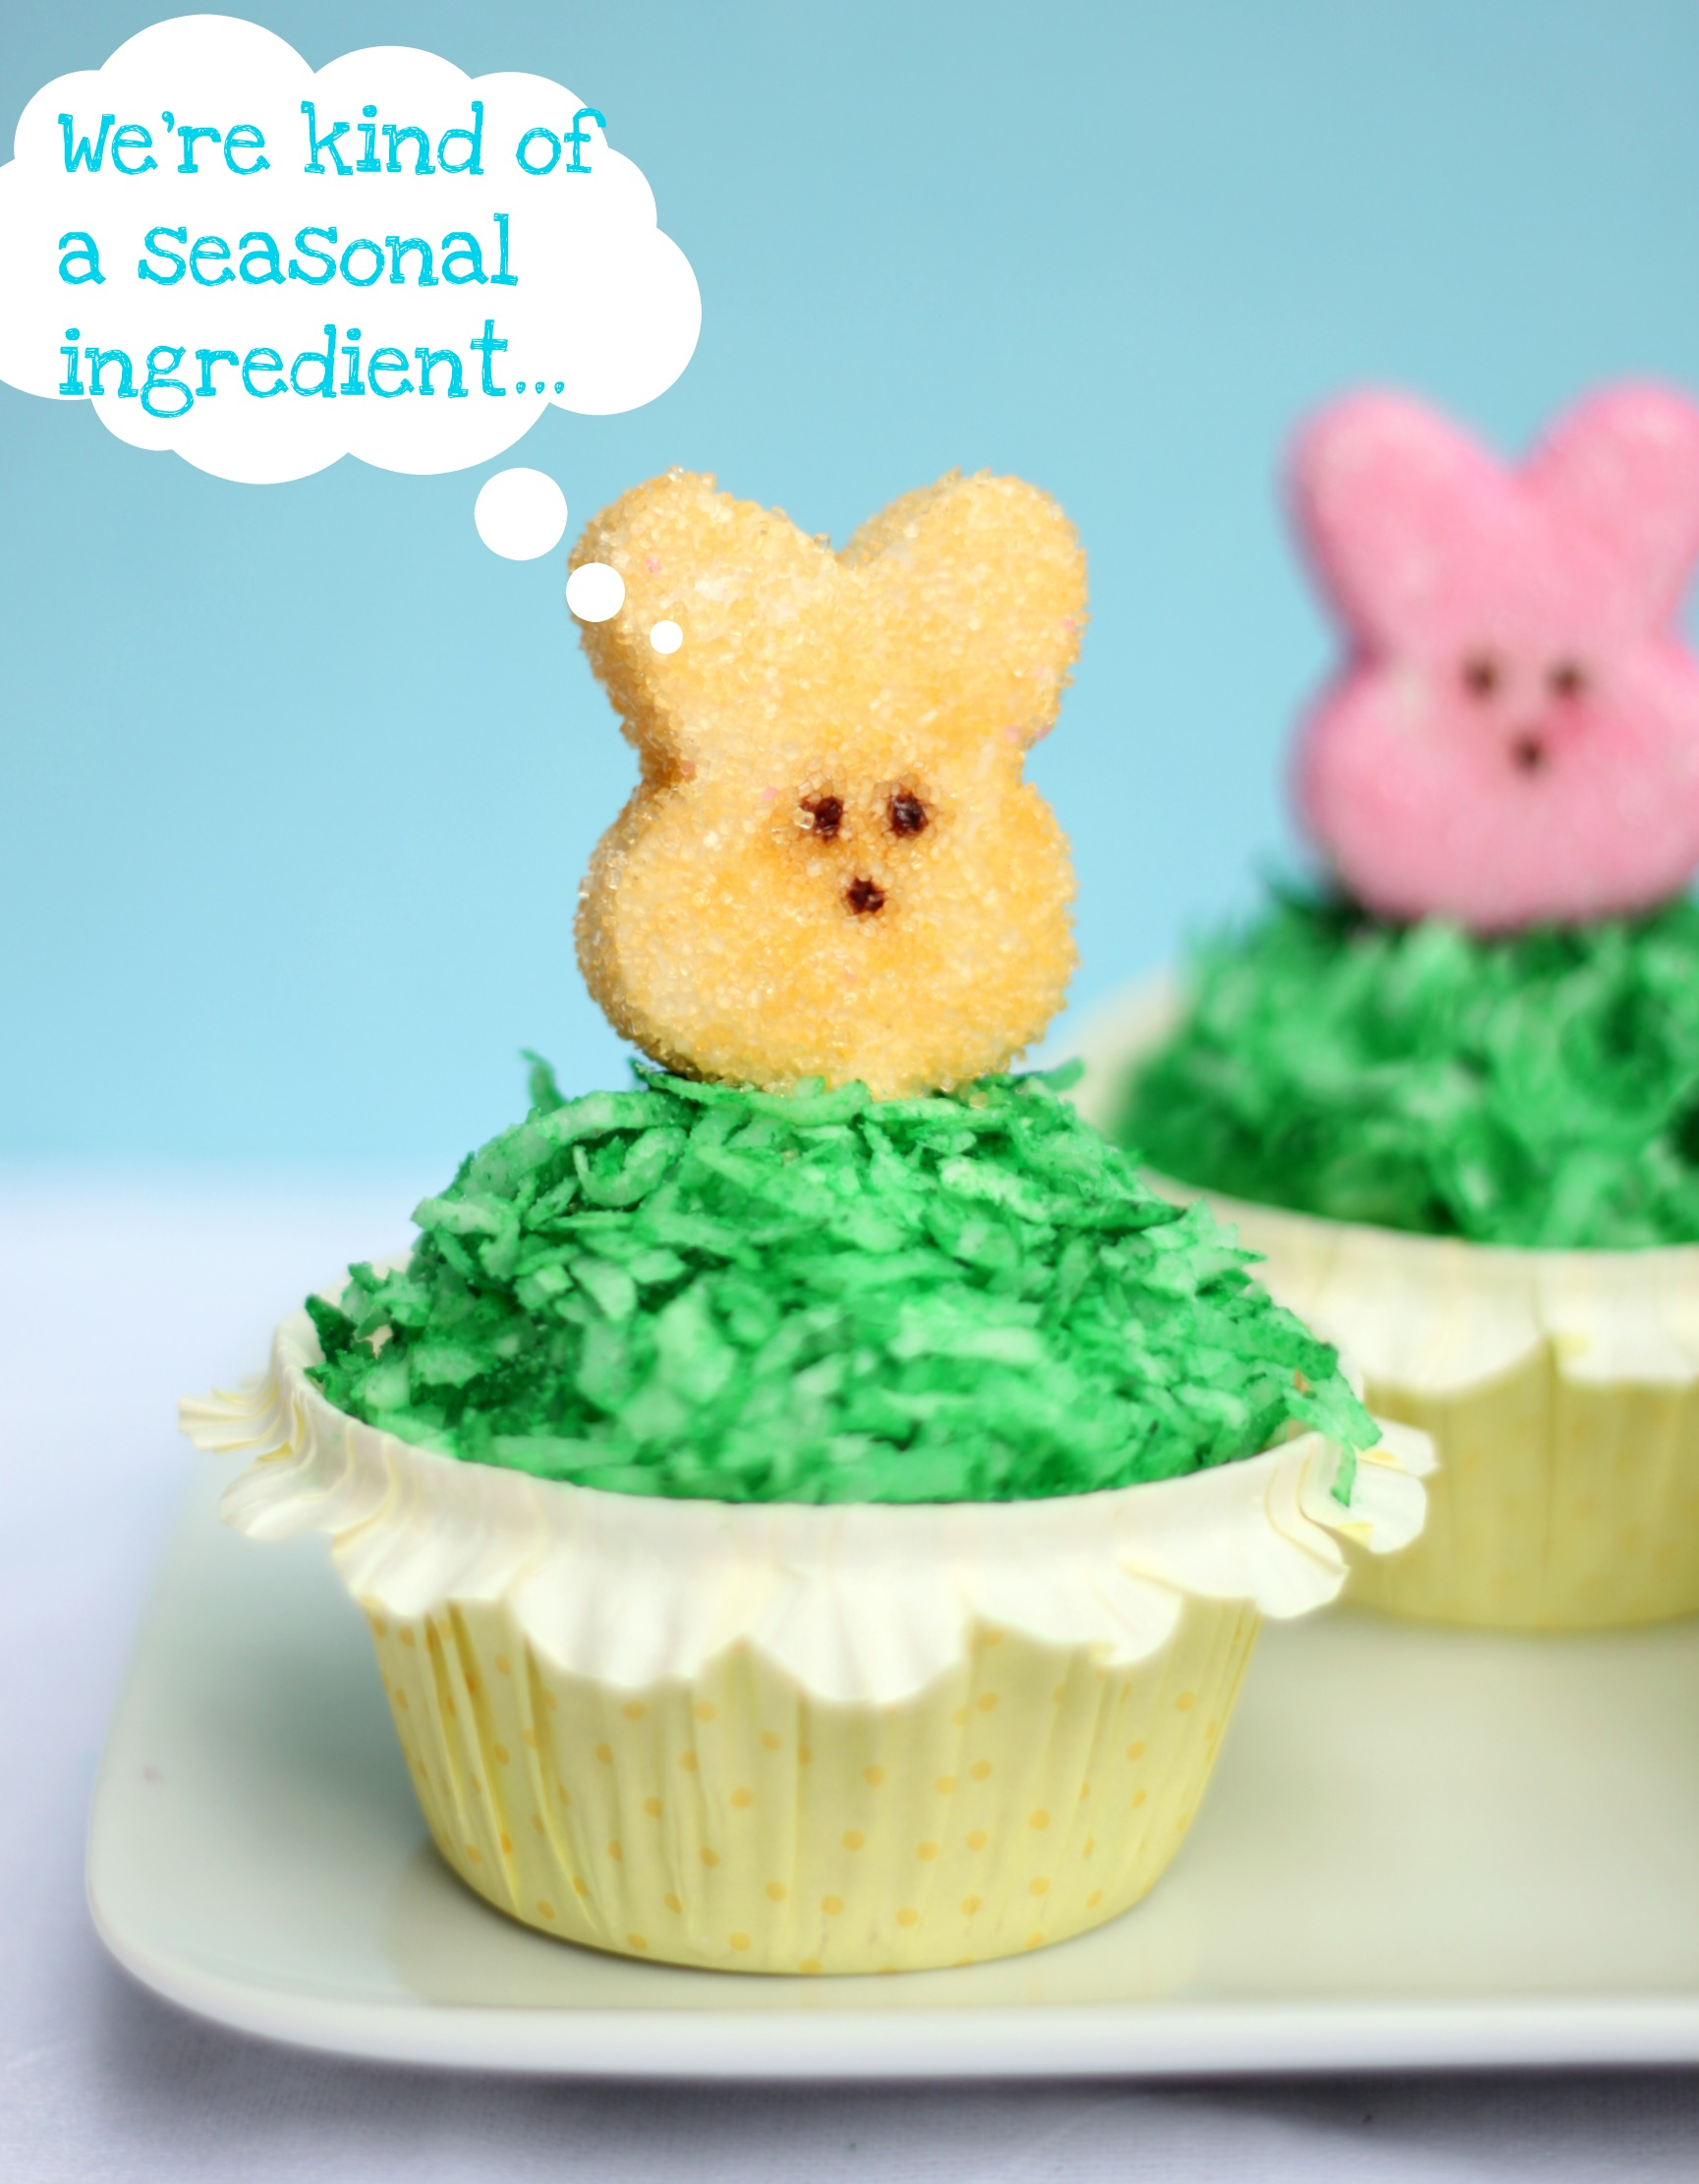 Cupcakes with homemade peeps seasonal ingredient